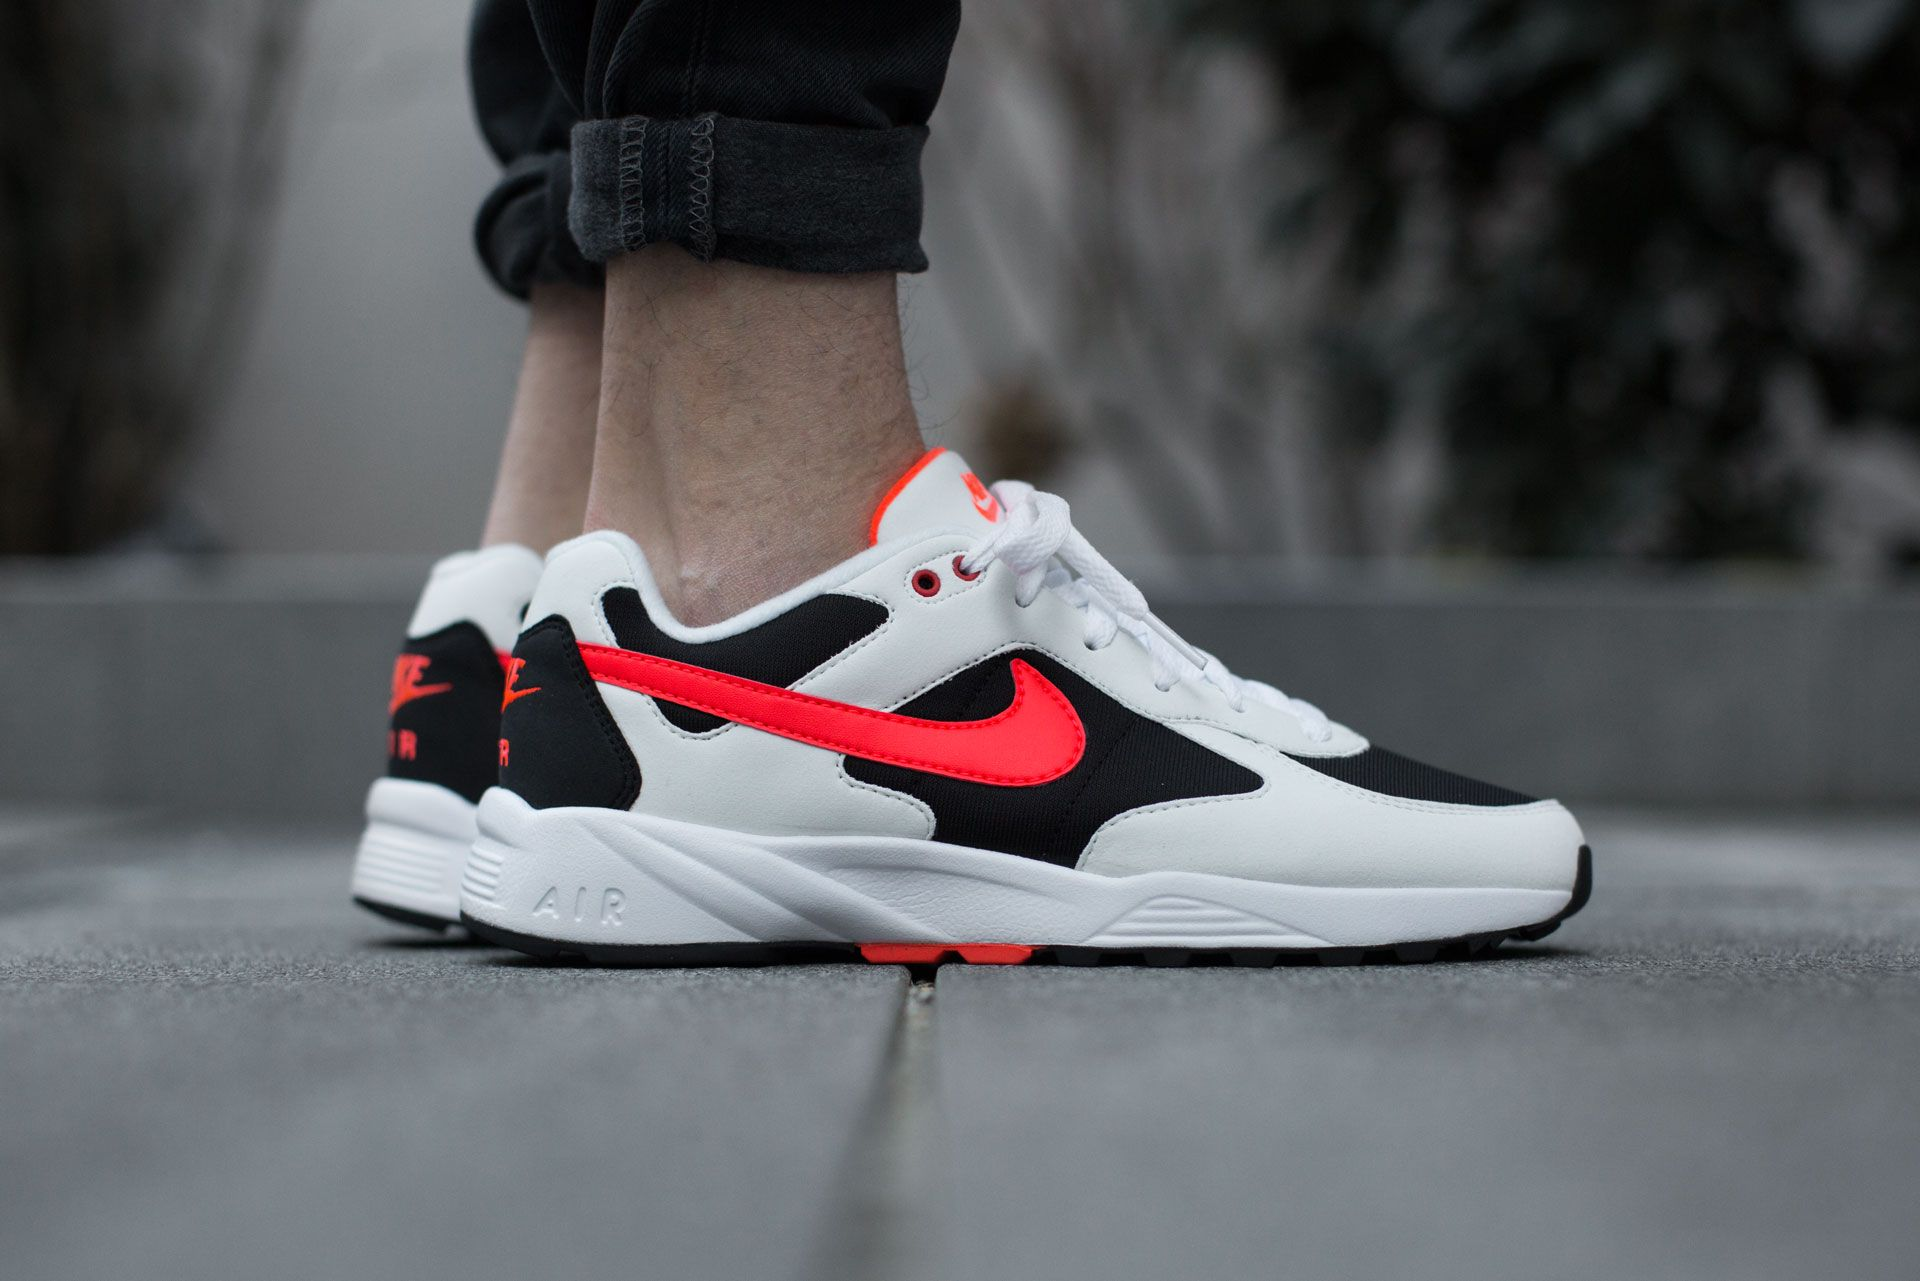 finest selection 2da91 bb86a Nike Air Icarus available at www.tint-footwear.comnike-air-icarus-nsw-106  Nike Air Icarus fallen swoosh